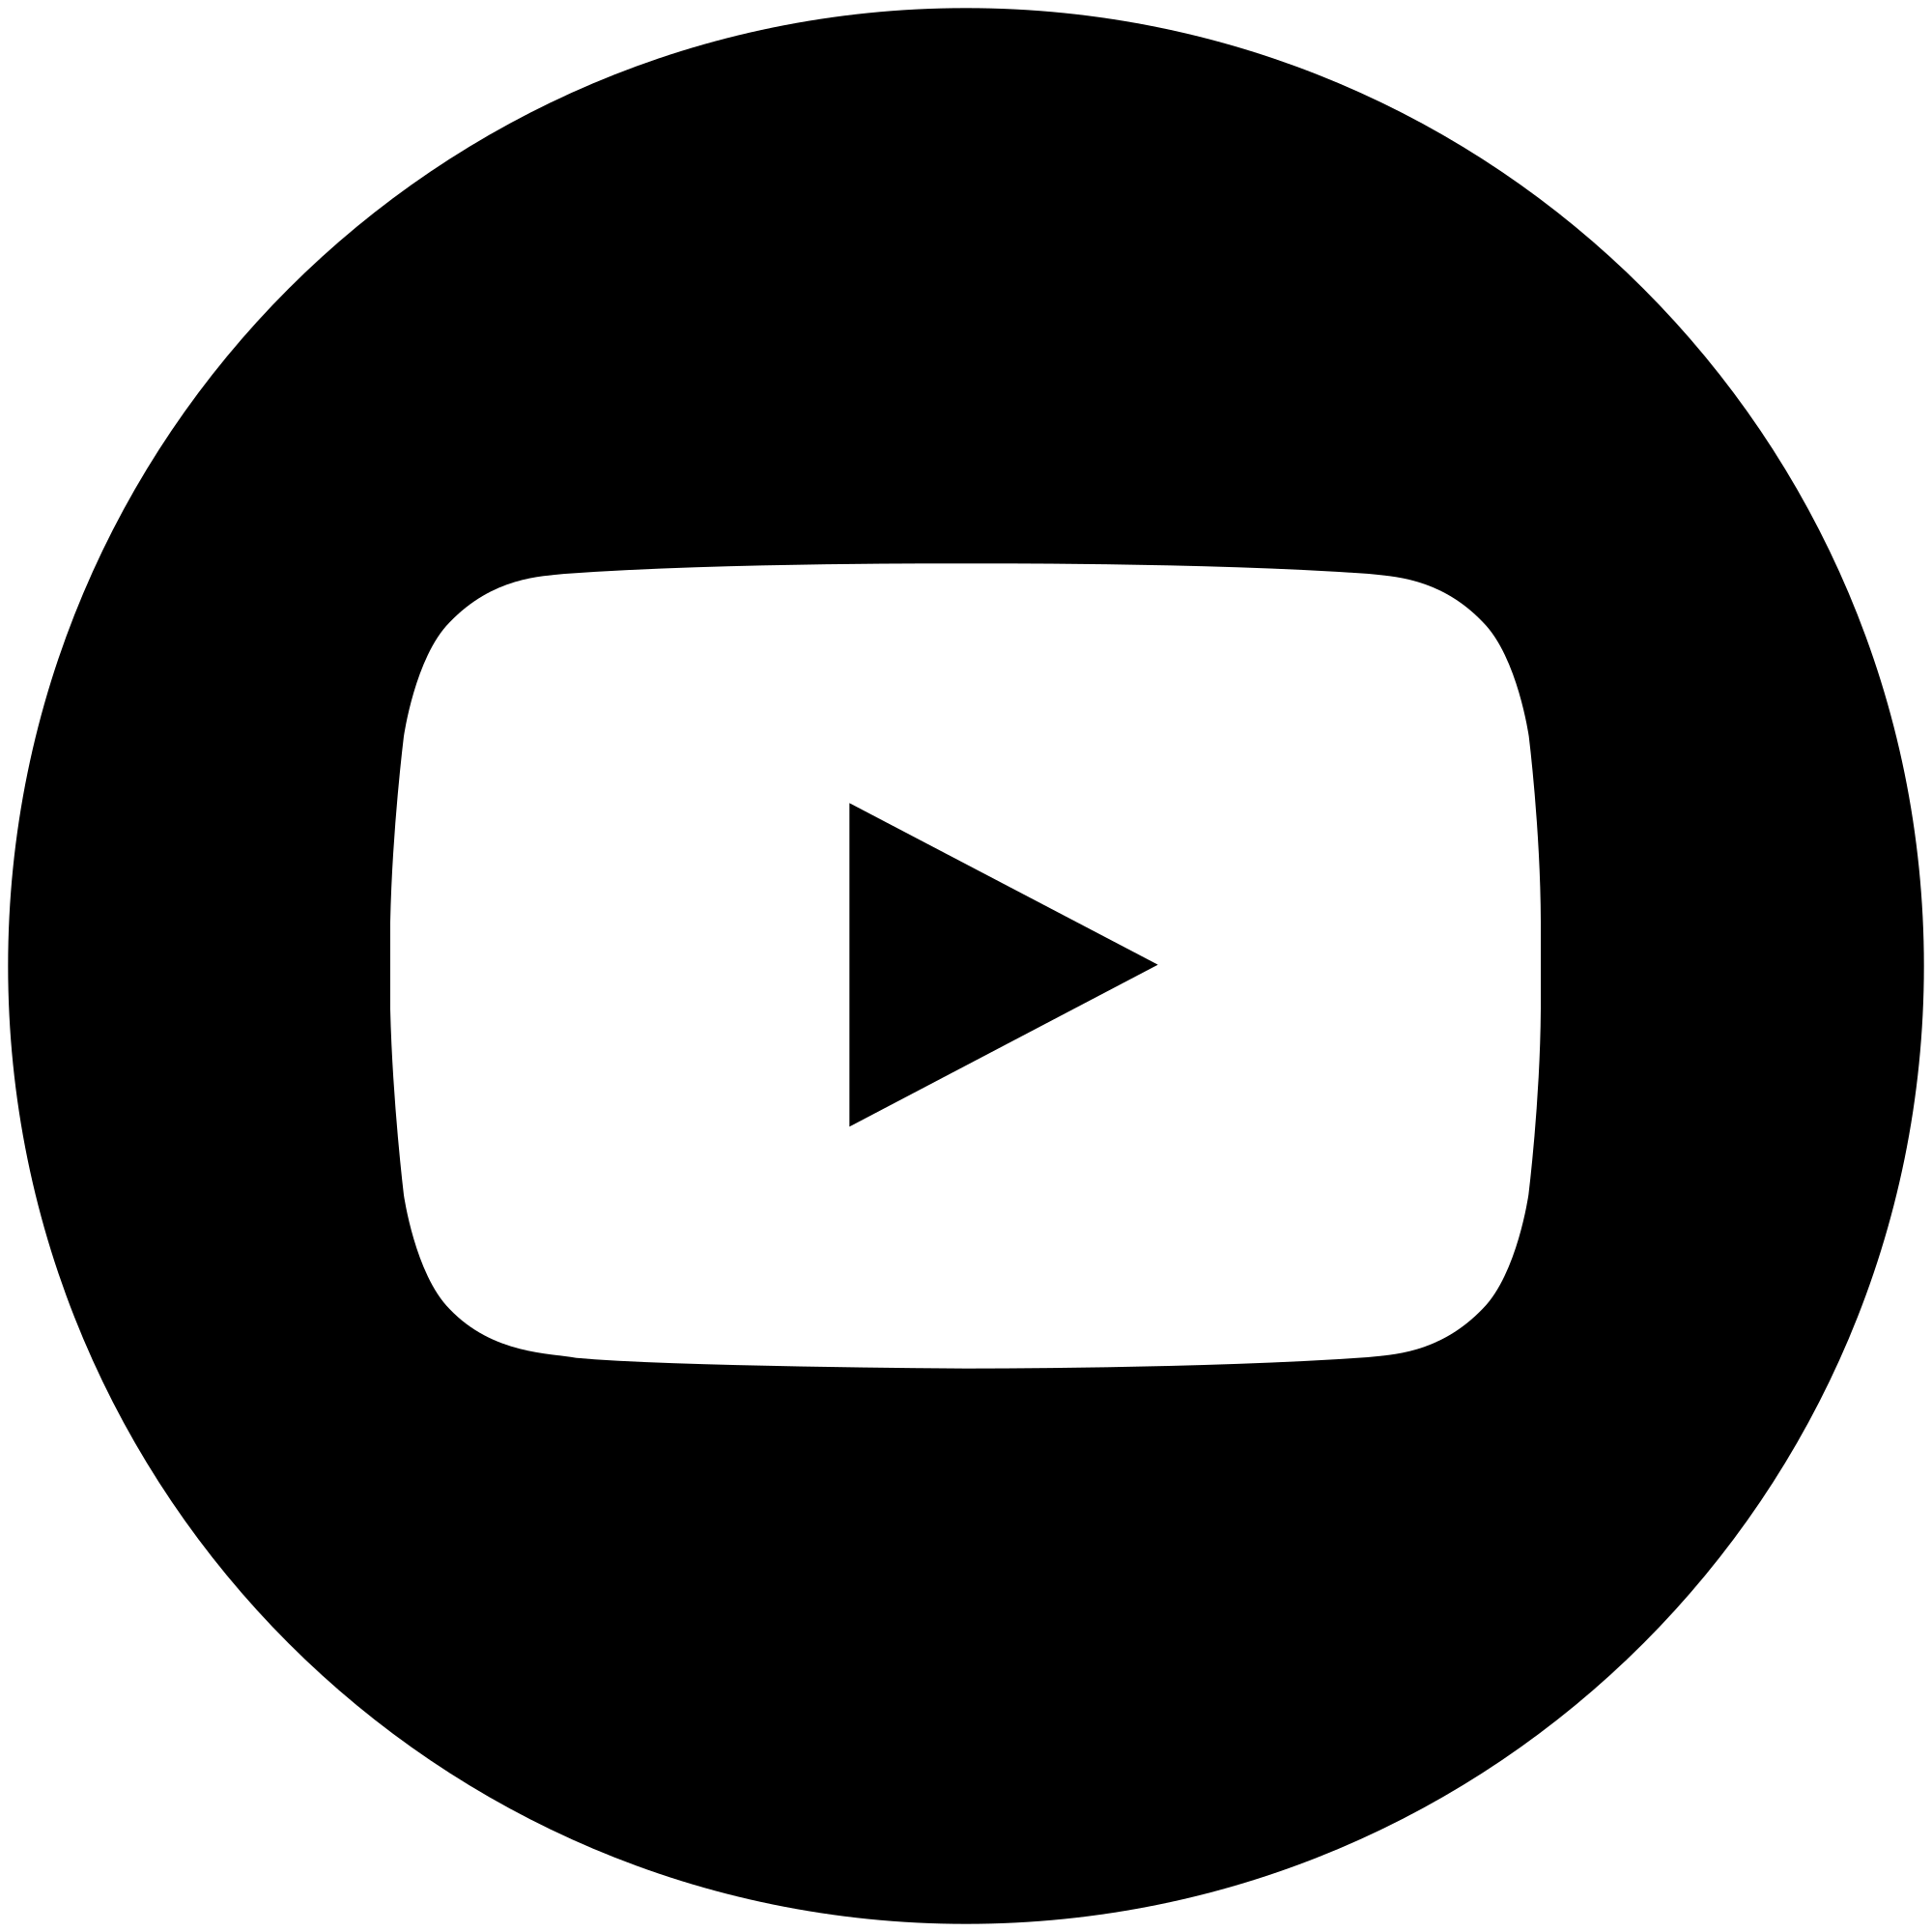 Youtube clipart white. File cis a k